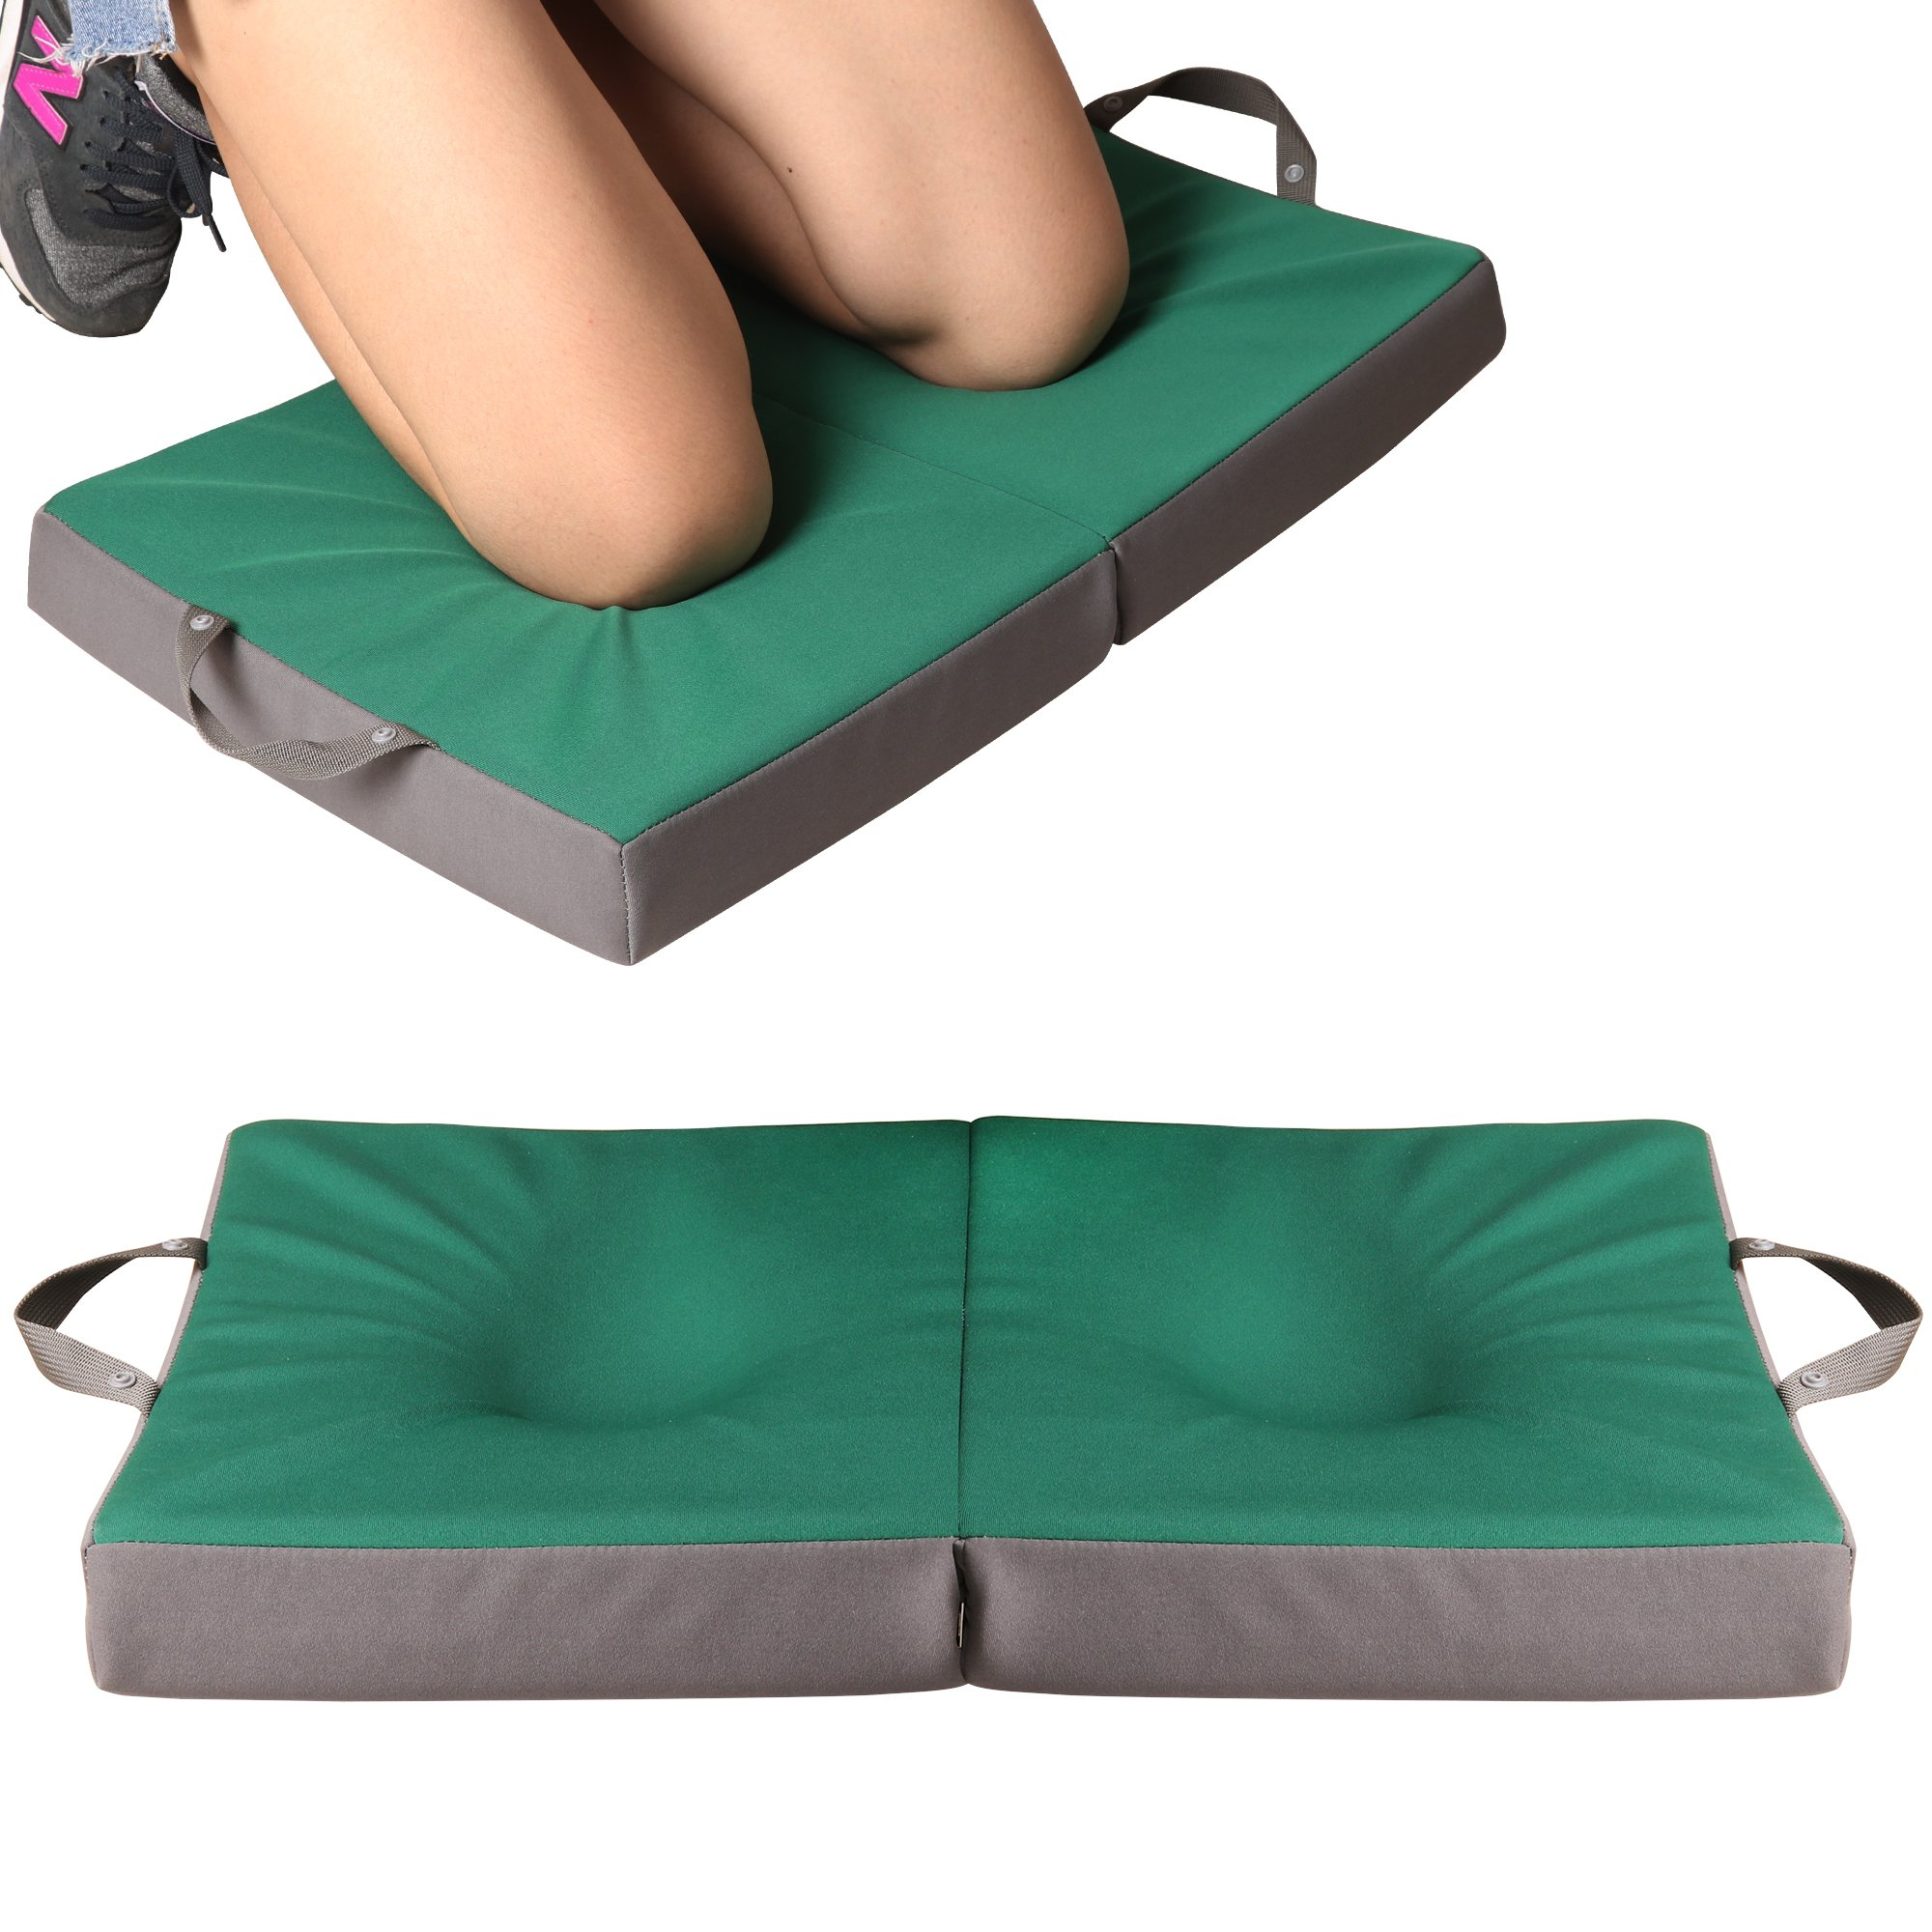 KI Store Garden Kneeling Pad Extra Thick Large Bath Pads Portable Water Resistant High Density Memory Foam Balance Slow Recovery Kneeler Cushion Shock Absorbing EVA Foam (Forest Green)